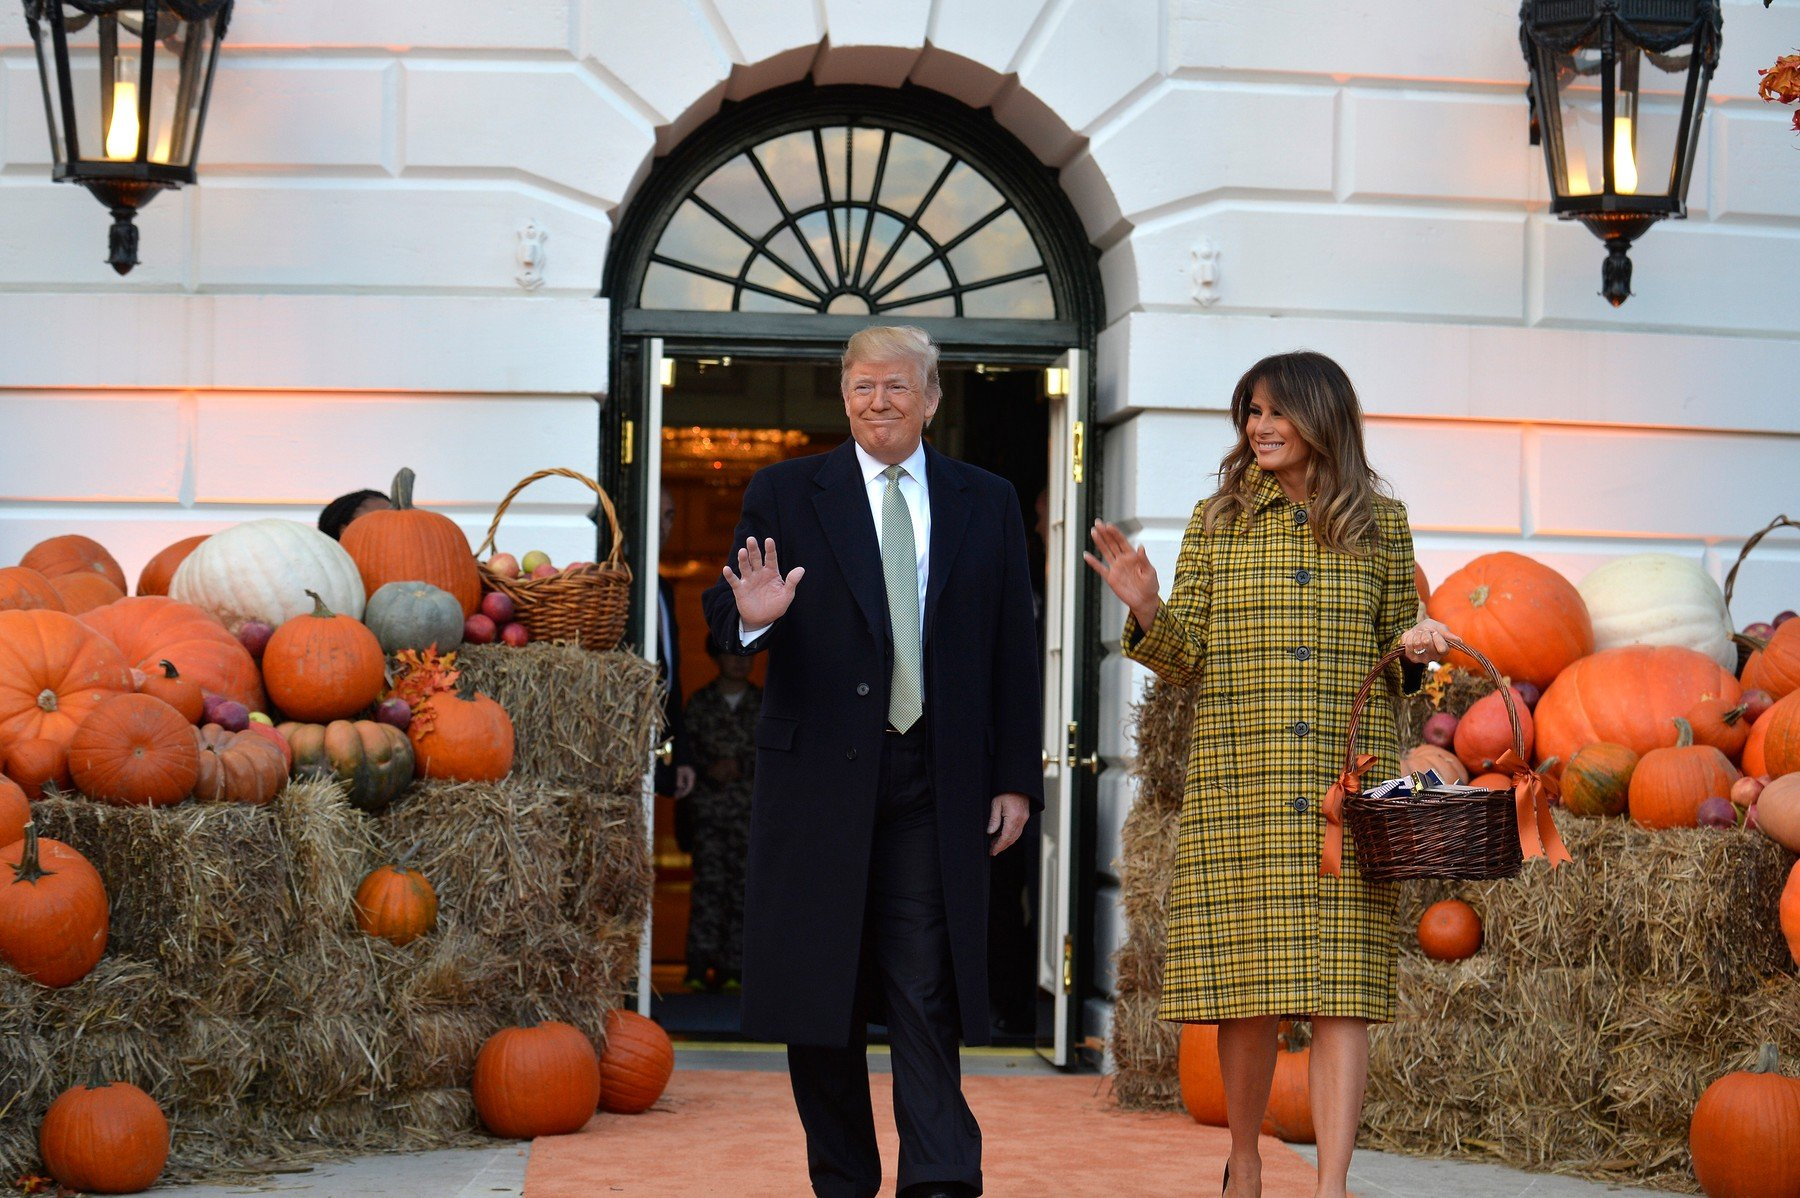 President Donald Trump and First Lady Melania Trump arrive to welcome trick or treaters to the White House for Halloween festivities, October 28, 2018, in Washington, DC., Image: 393015570, License: Rights-managed, Restrictions: *** World Rights ***, Model Release: no, Credit line: Profimedia, SIPA USA